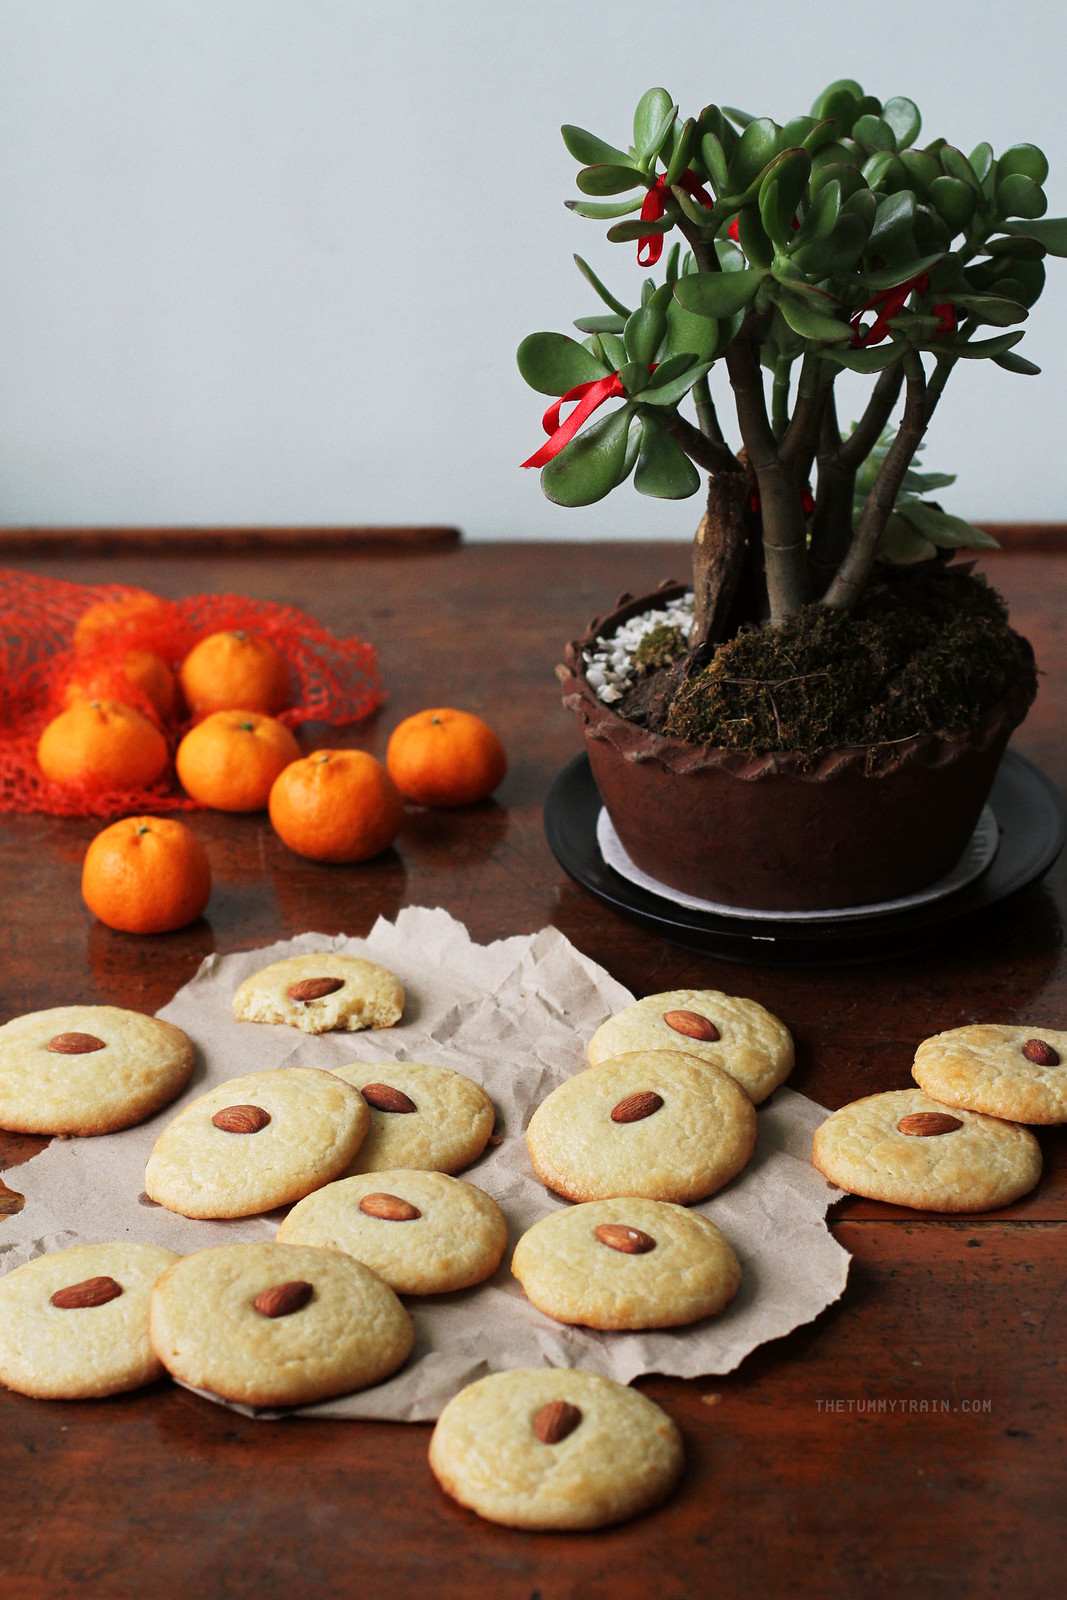 24847670706 06b224f1d5 h - Celebrating with these Lunar New Year Almond Cookies